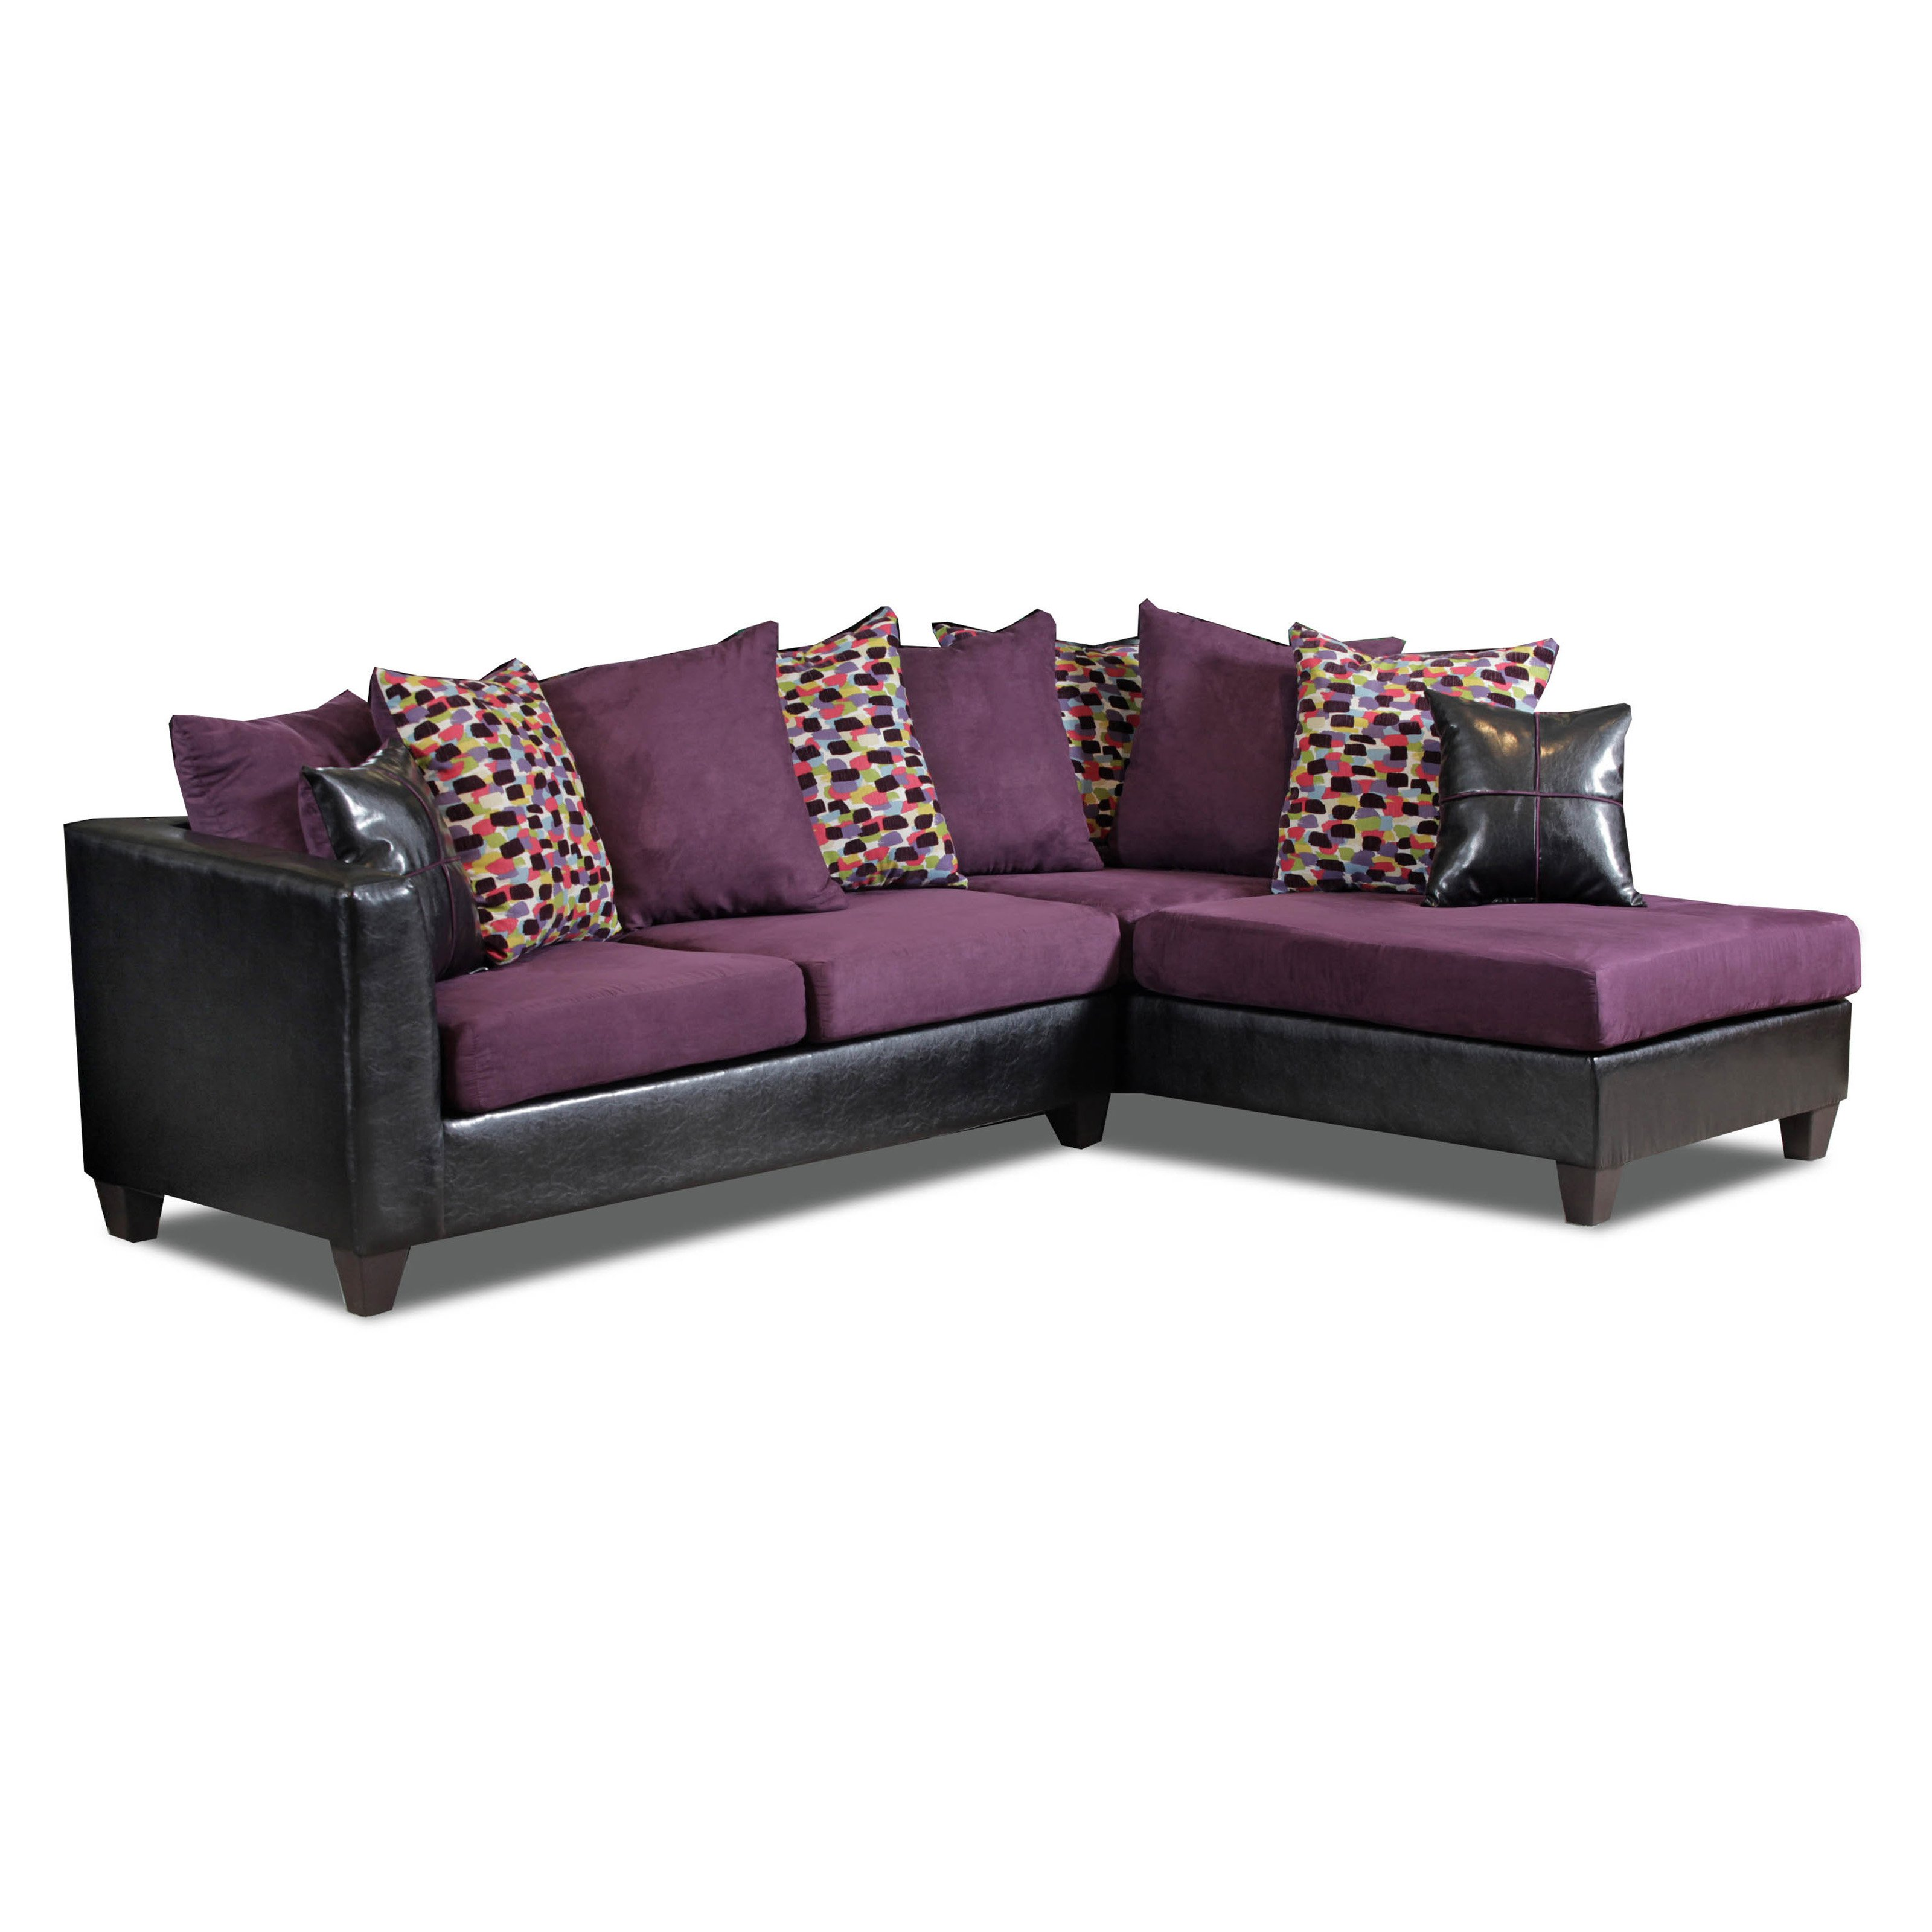 Chelsea Home Bates 2 Piece Sectional Sofa with 10 Toss Pillows